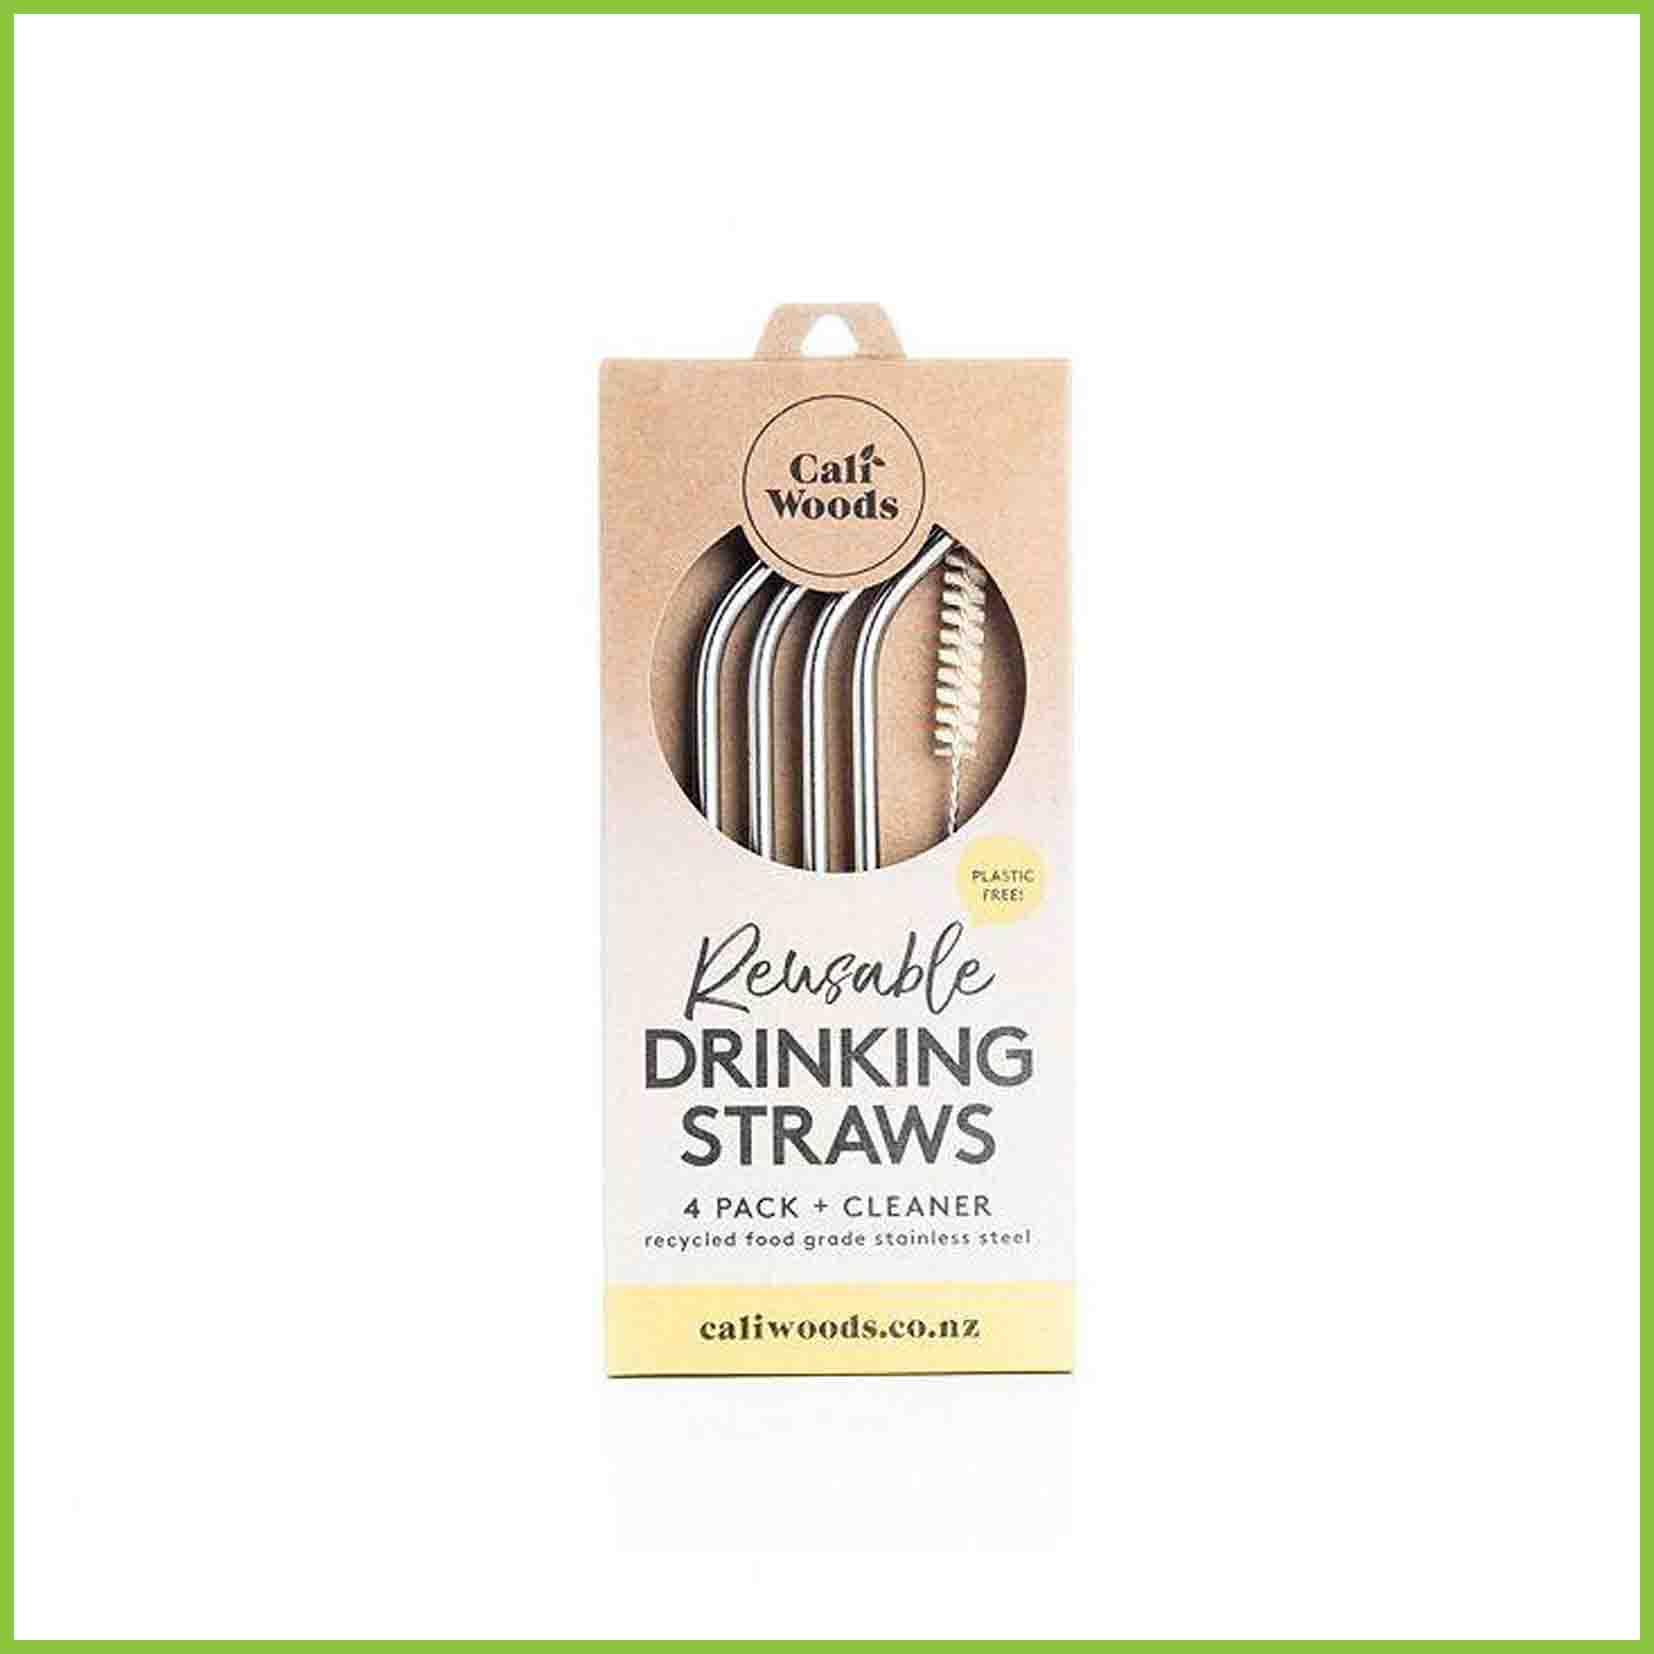 Caliwoods drinking straws in their packaging